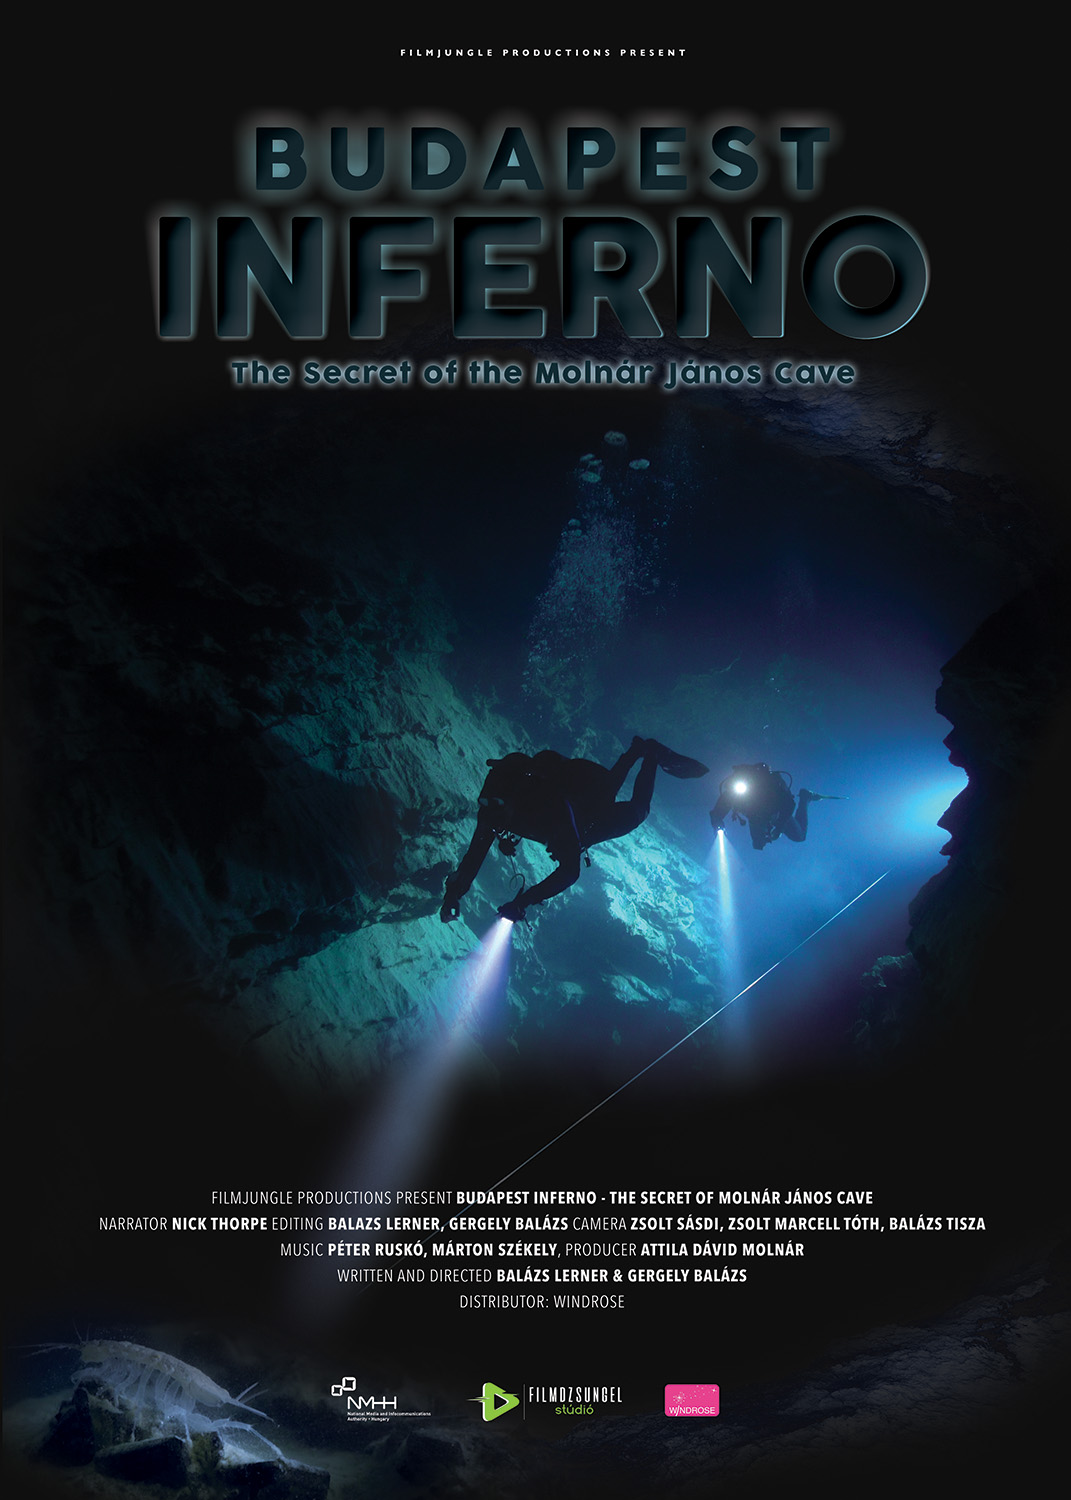 bp_inferno_poster_eng_new.jpg